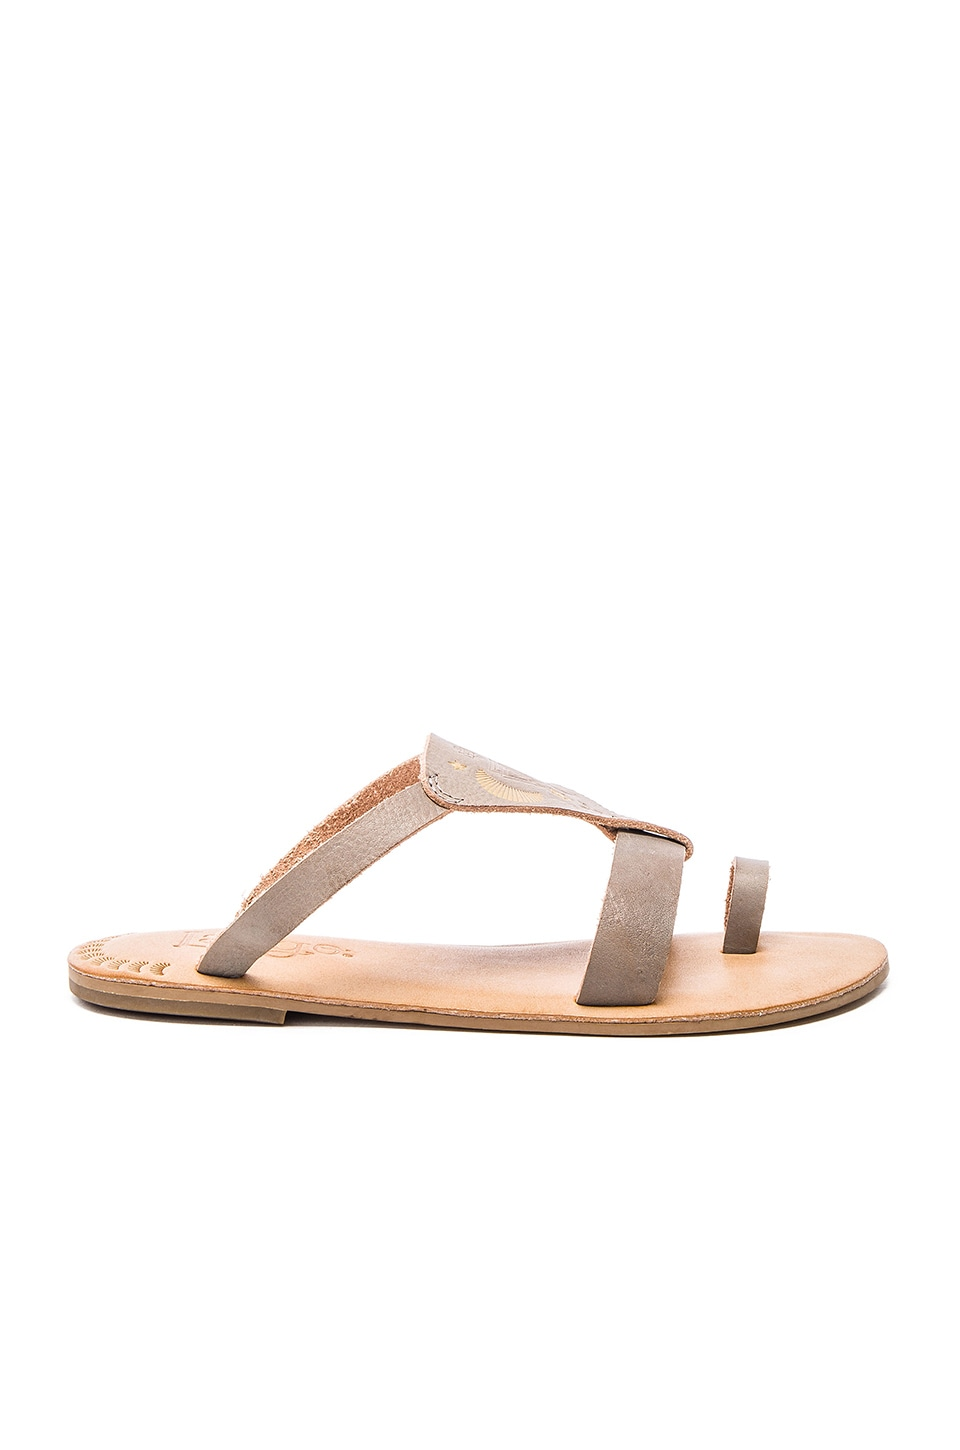 Latigo Olana Sandal in Fog Grey